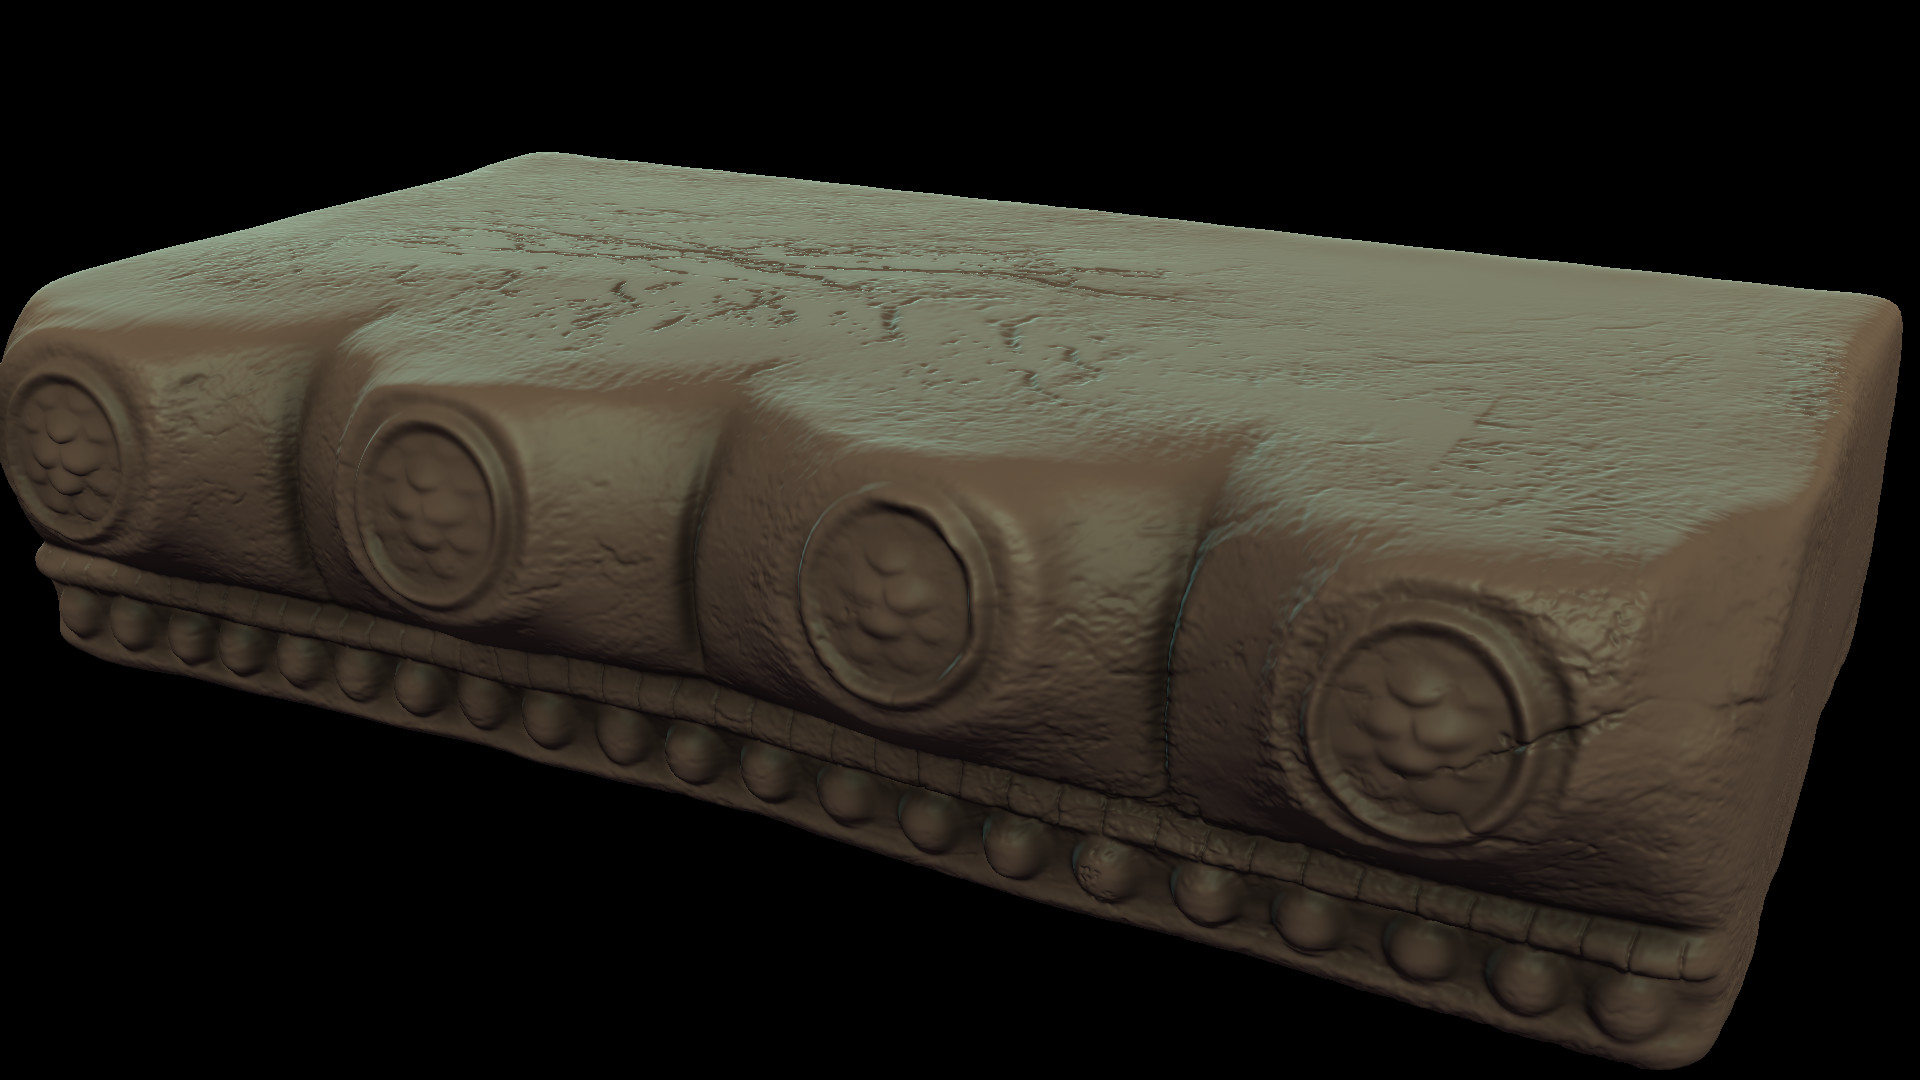 David baldwin mudbox trim block